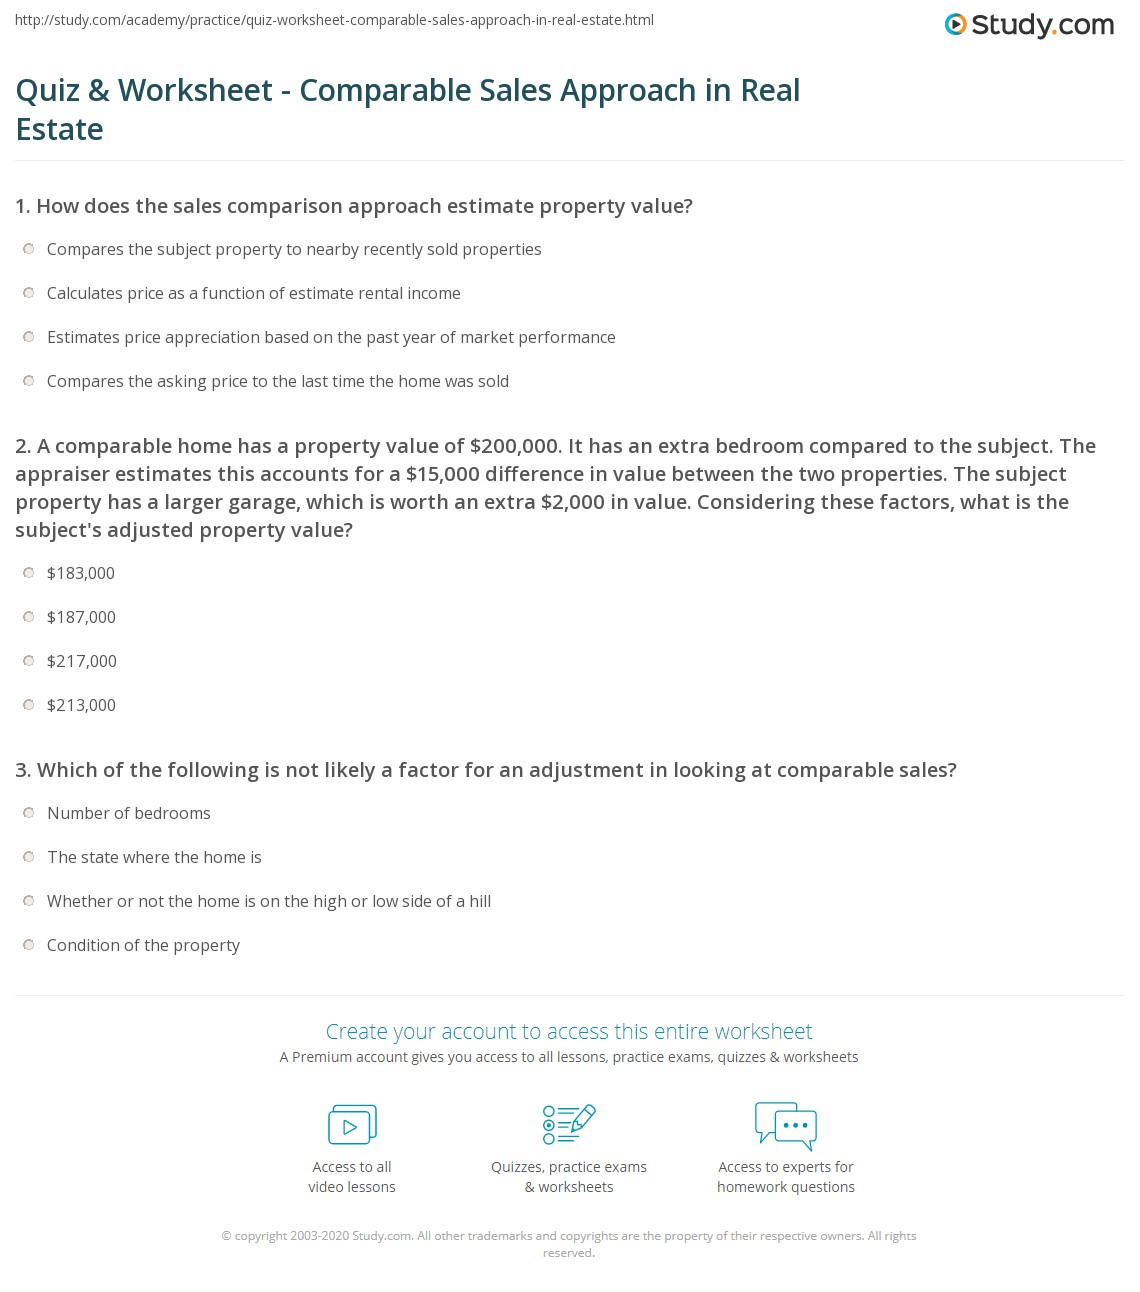 Quiz & Worksheet - Comparable Sales Approach in Real Estate | Study.com